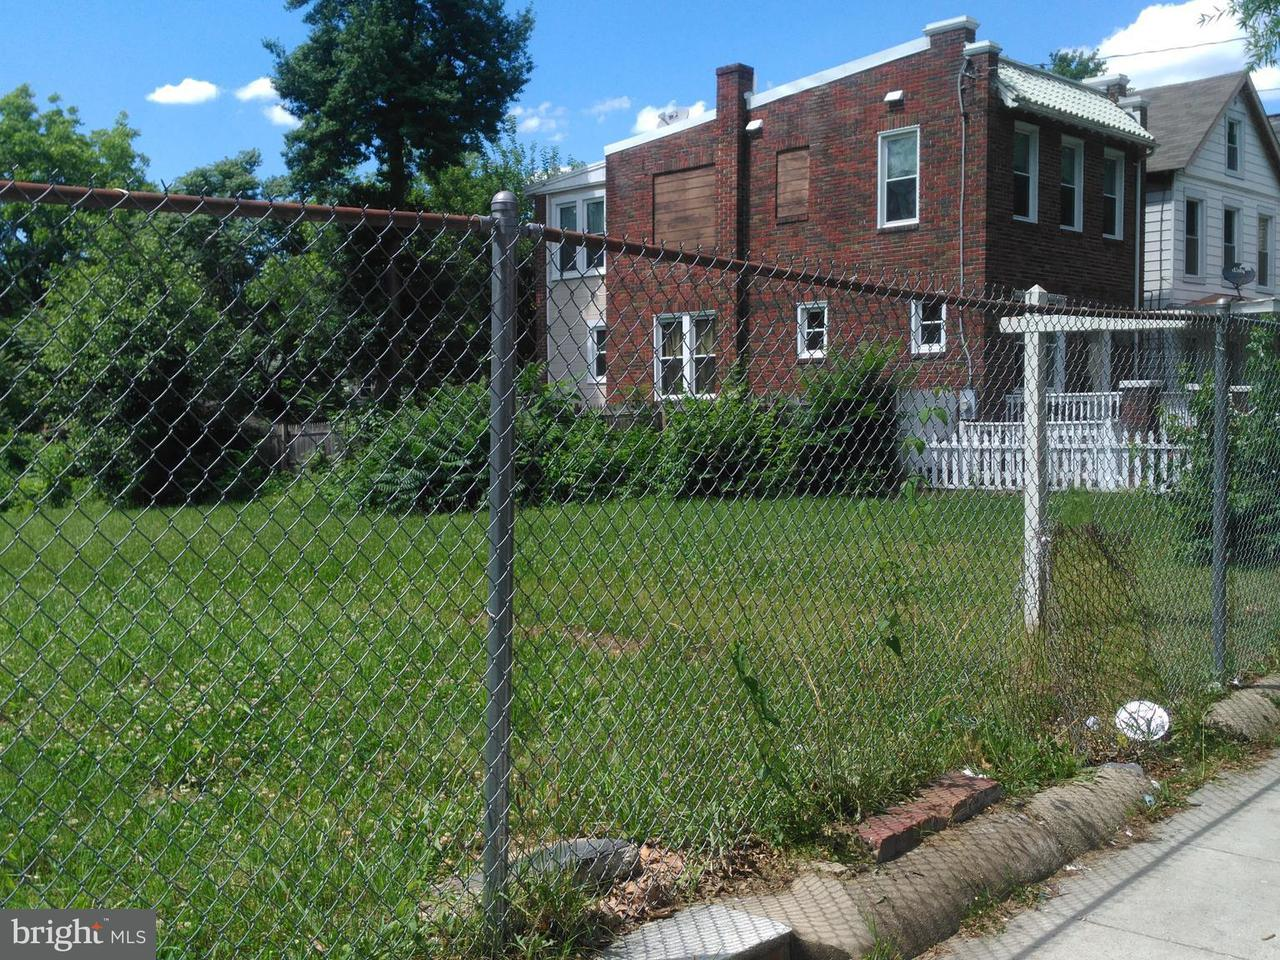 Additional photo for property listing at 3343 Martin Luther King Jr Ave SE  Washington, District Of Columbia 20032 United States